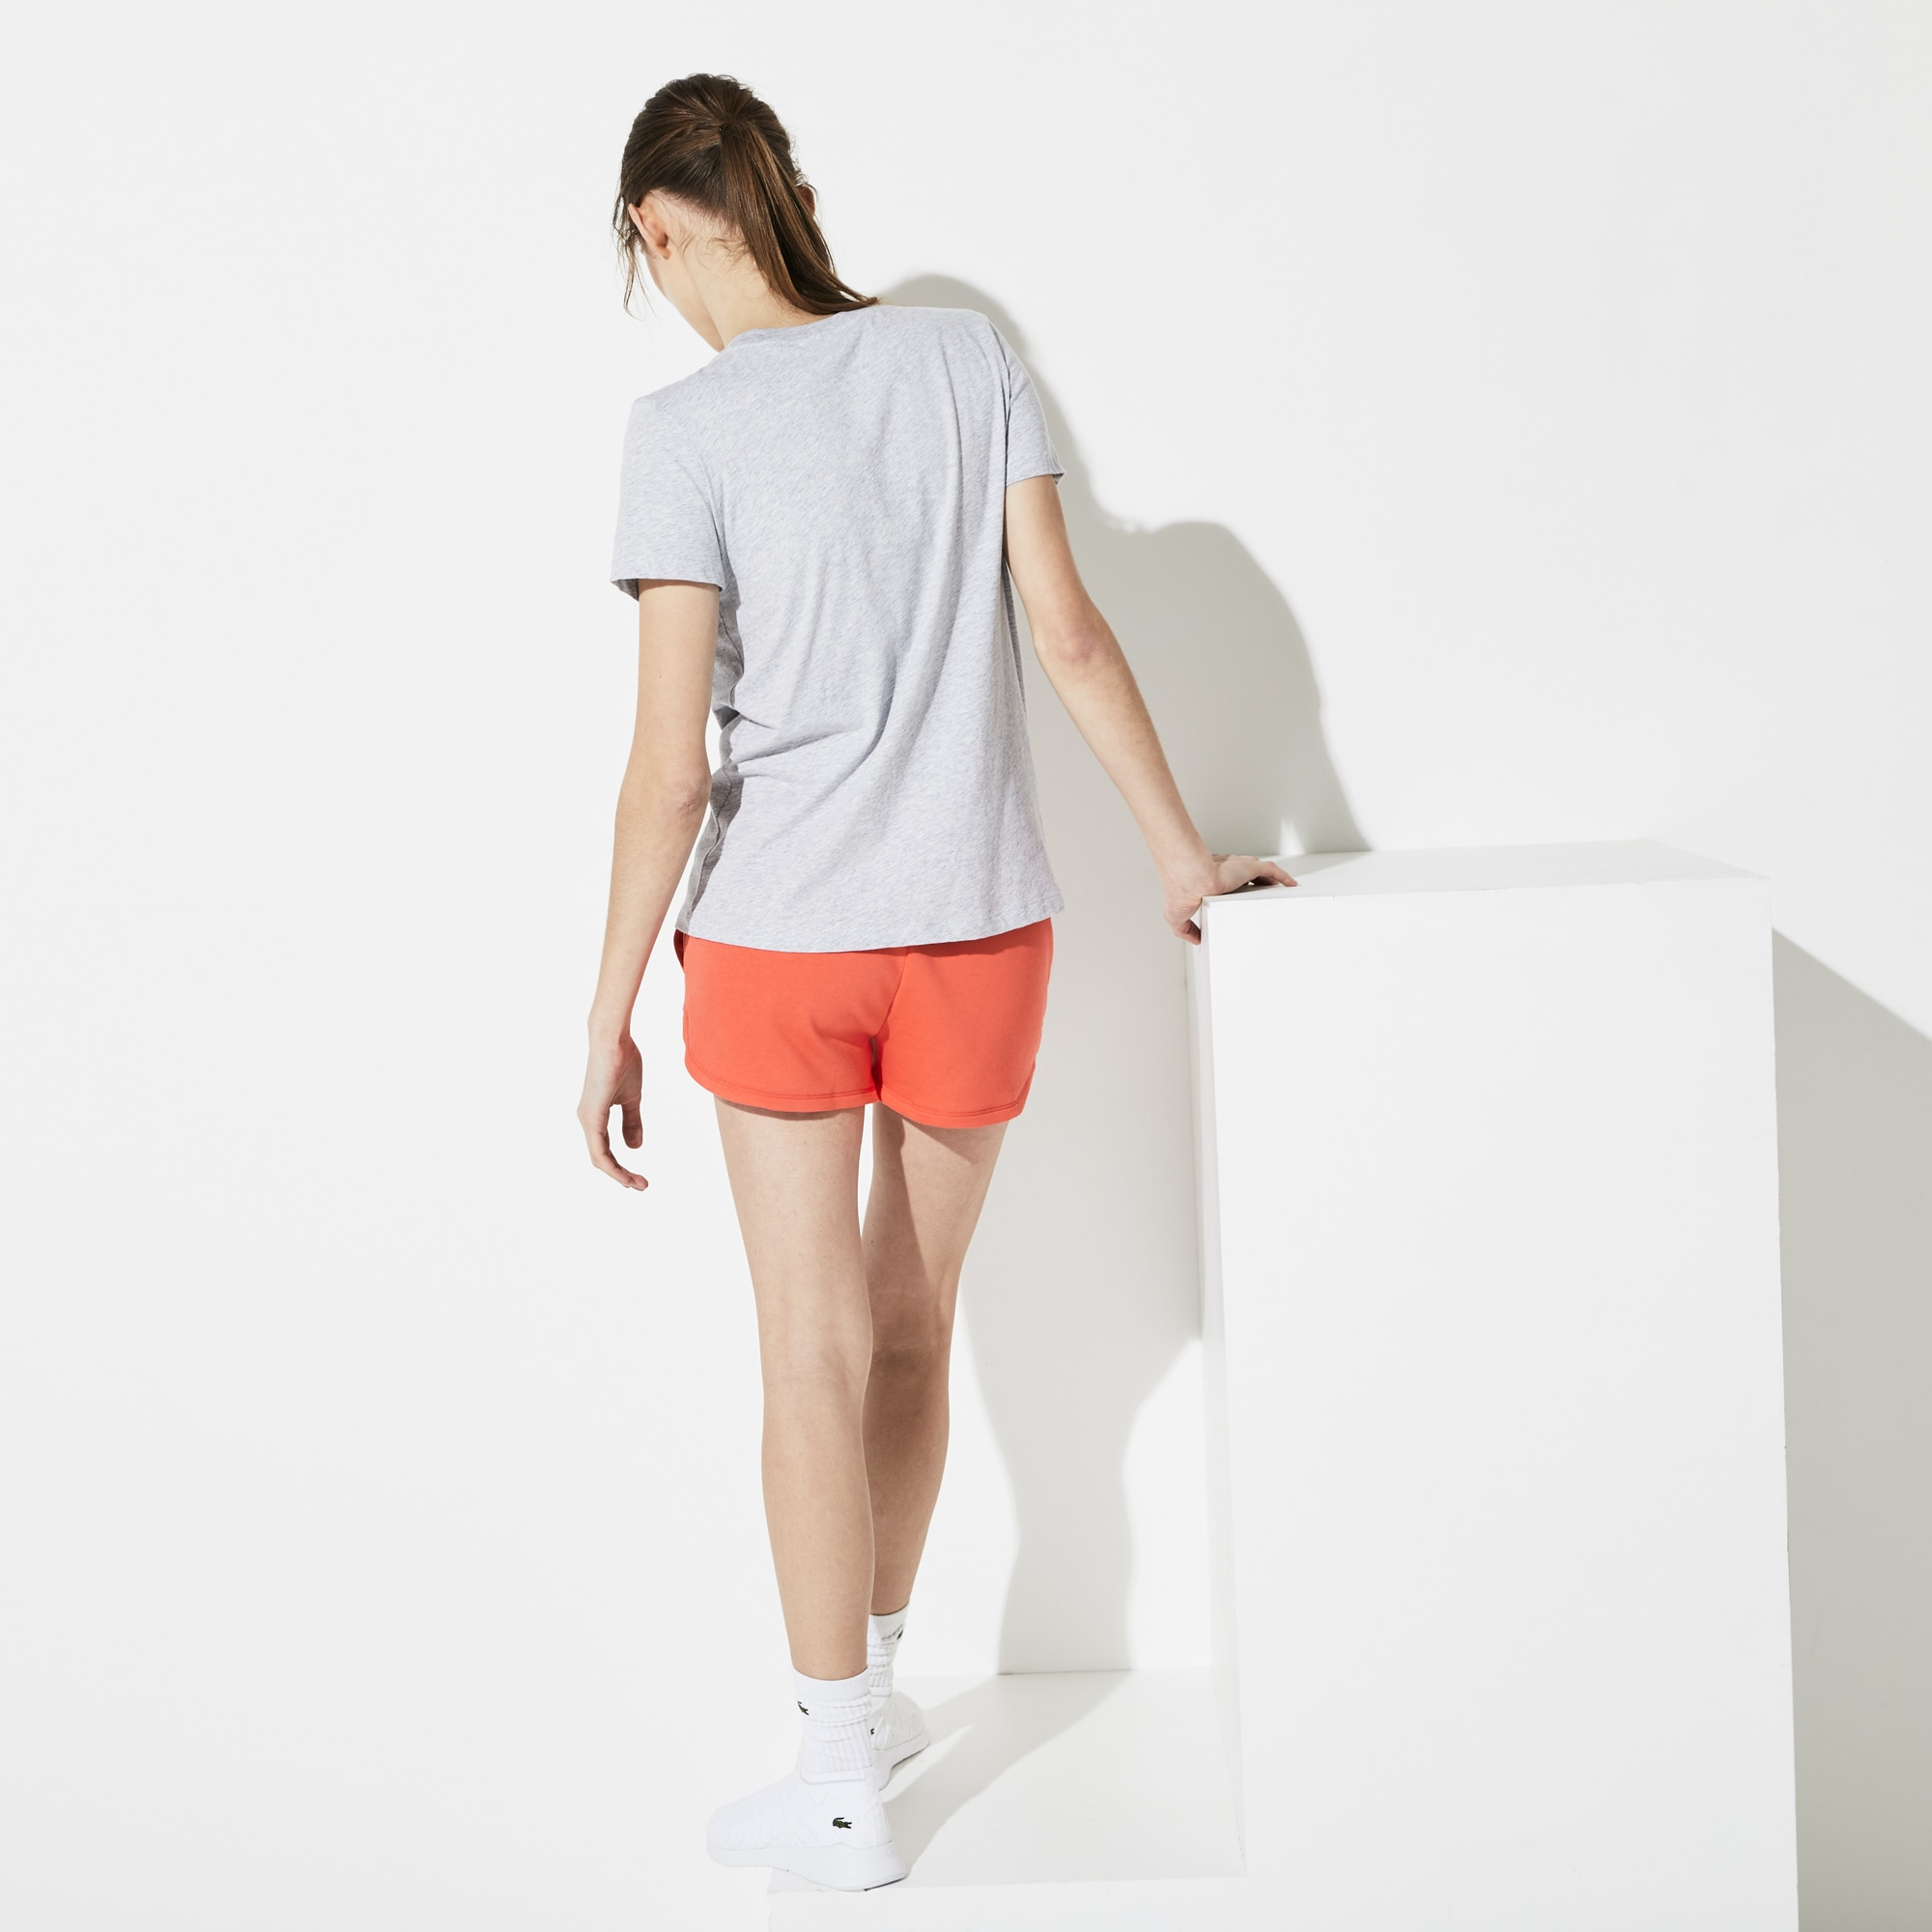 Women's SPORT Flowing Cotton Tennis T-shirt